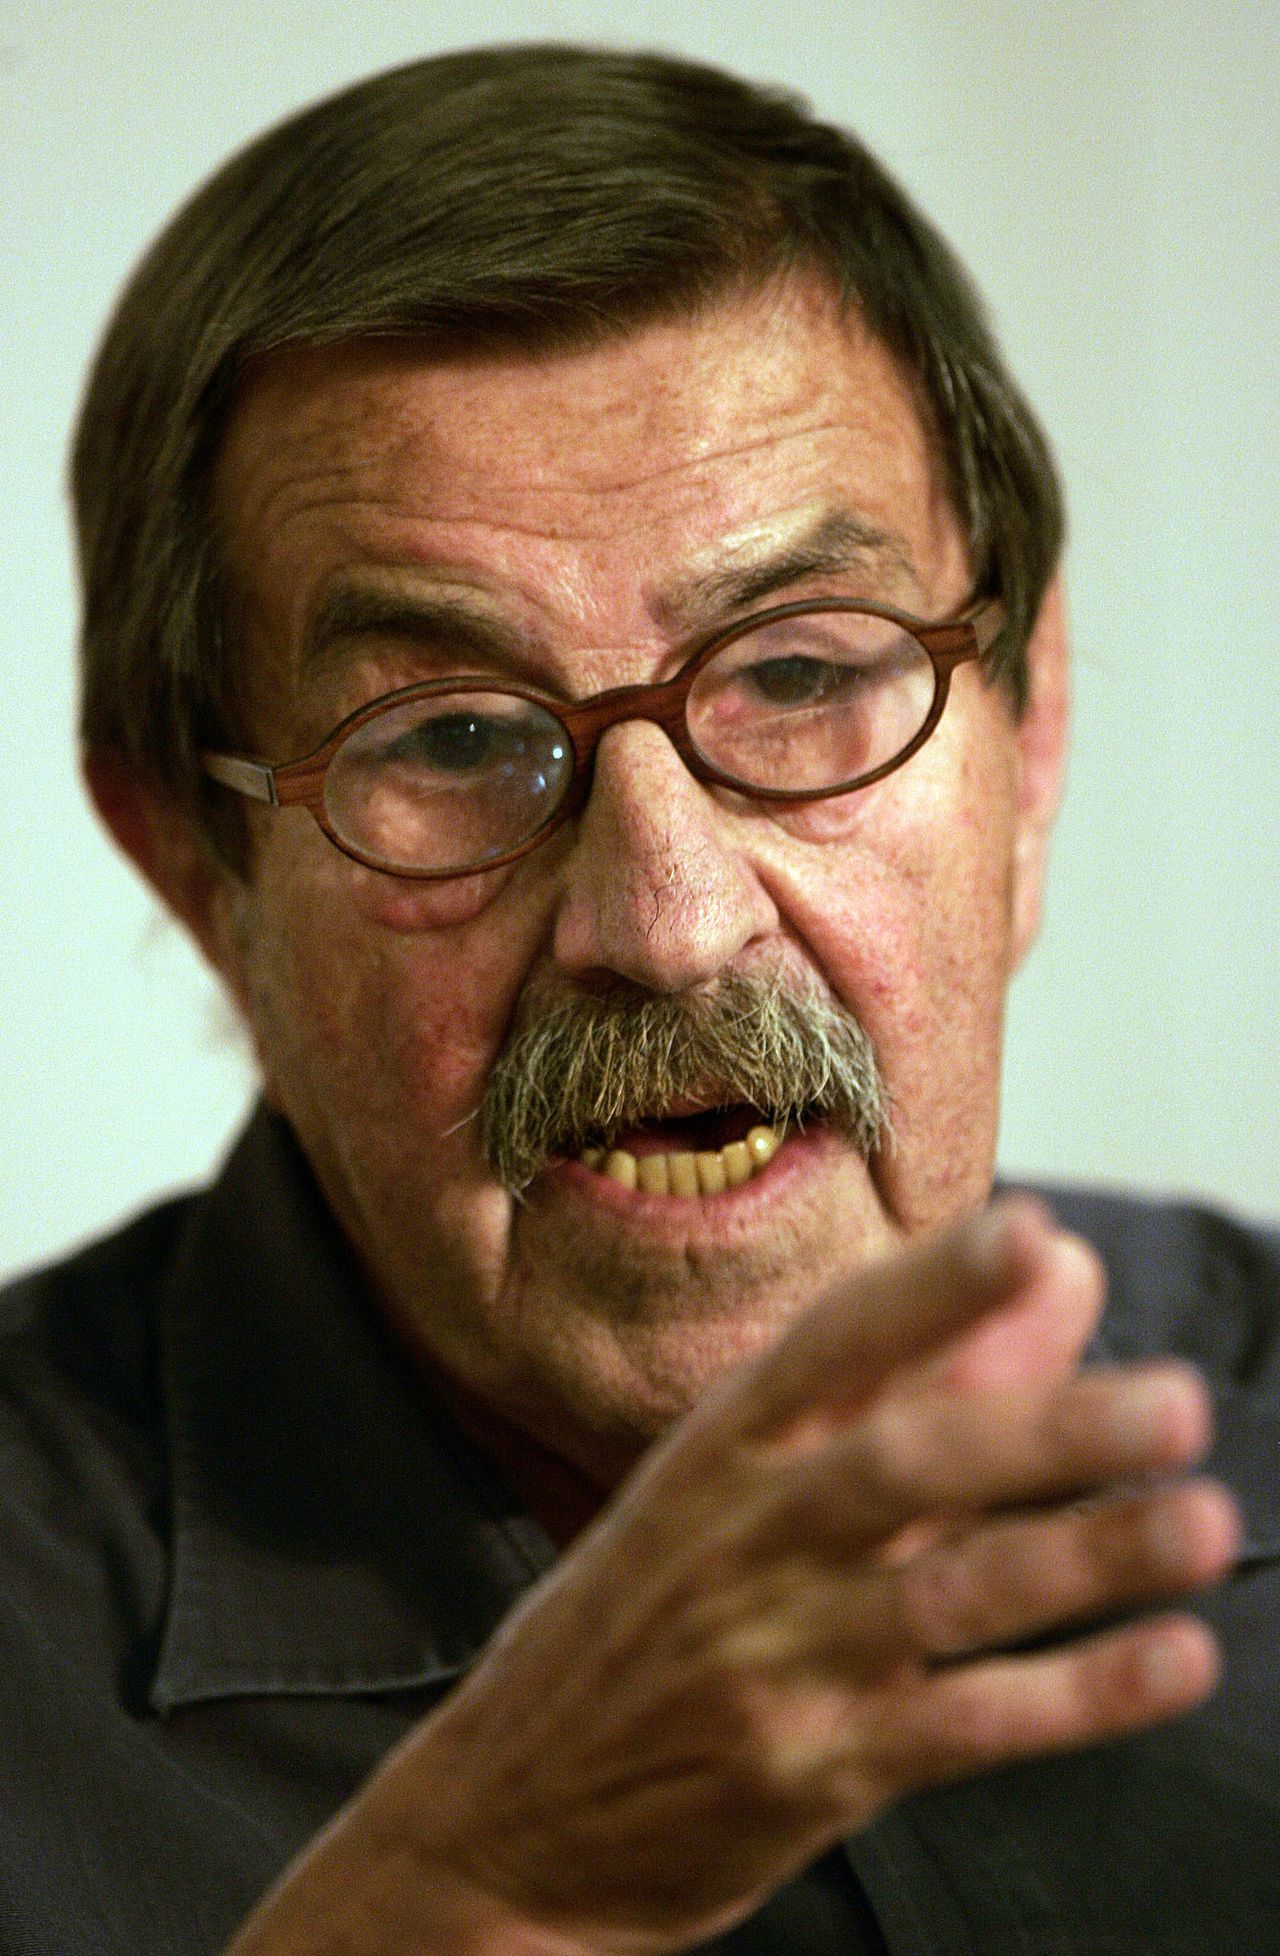 Günter Grass Foto AP **FILE**German writer and Nobel prize laureate Guenter Grass during a press conference in Hamburg, northern Germany, in this file photo from Sept. 8, 2005. Grass admitted in an interview that he served in the Waffen SS, the combat arm of Adolf Hitler's dreaded paramilitary forces during World War II, a German newspaper reported Friday Aug. 11, 2006. (AP Photo/Kai-Uwe Knoth-File)